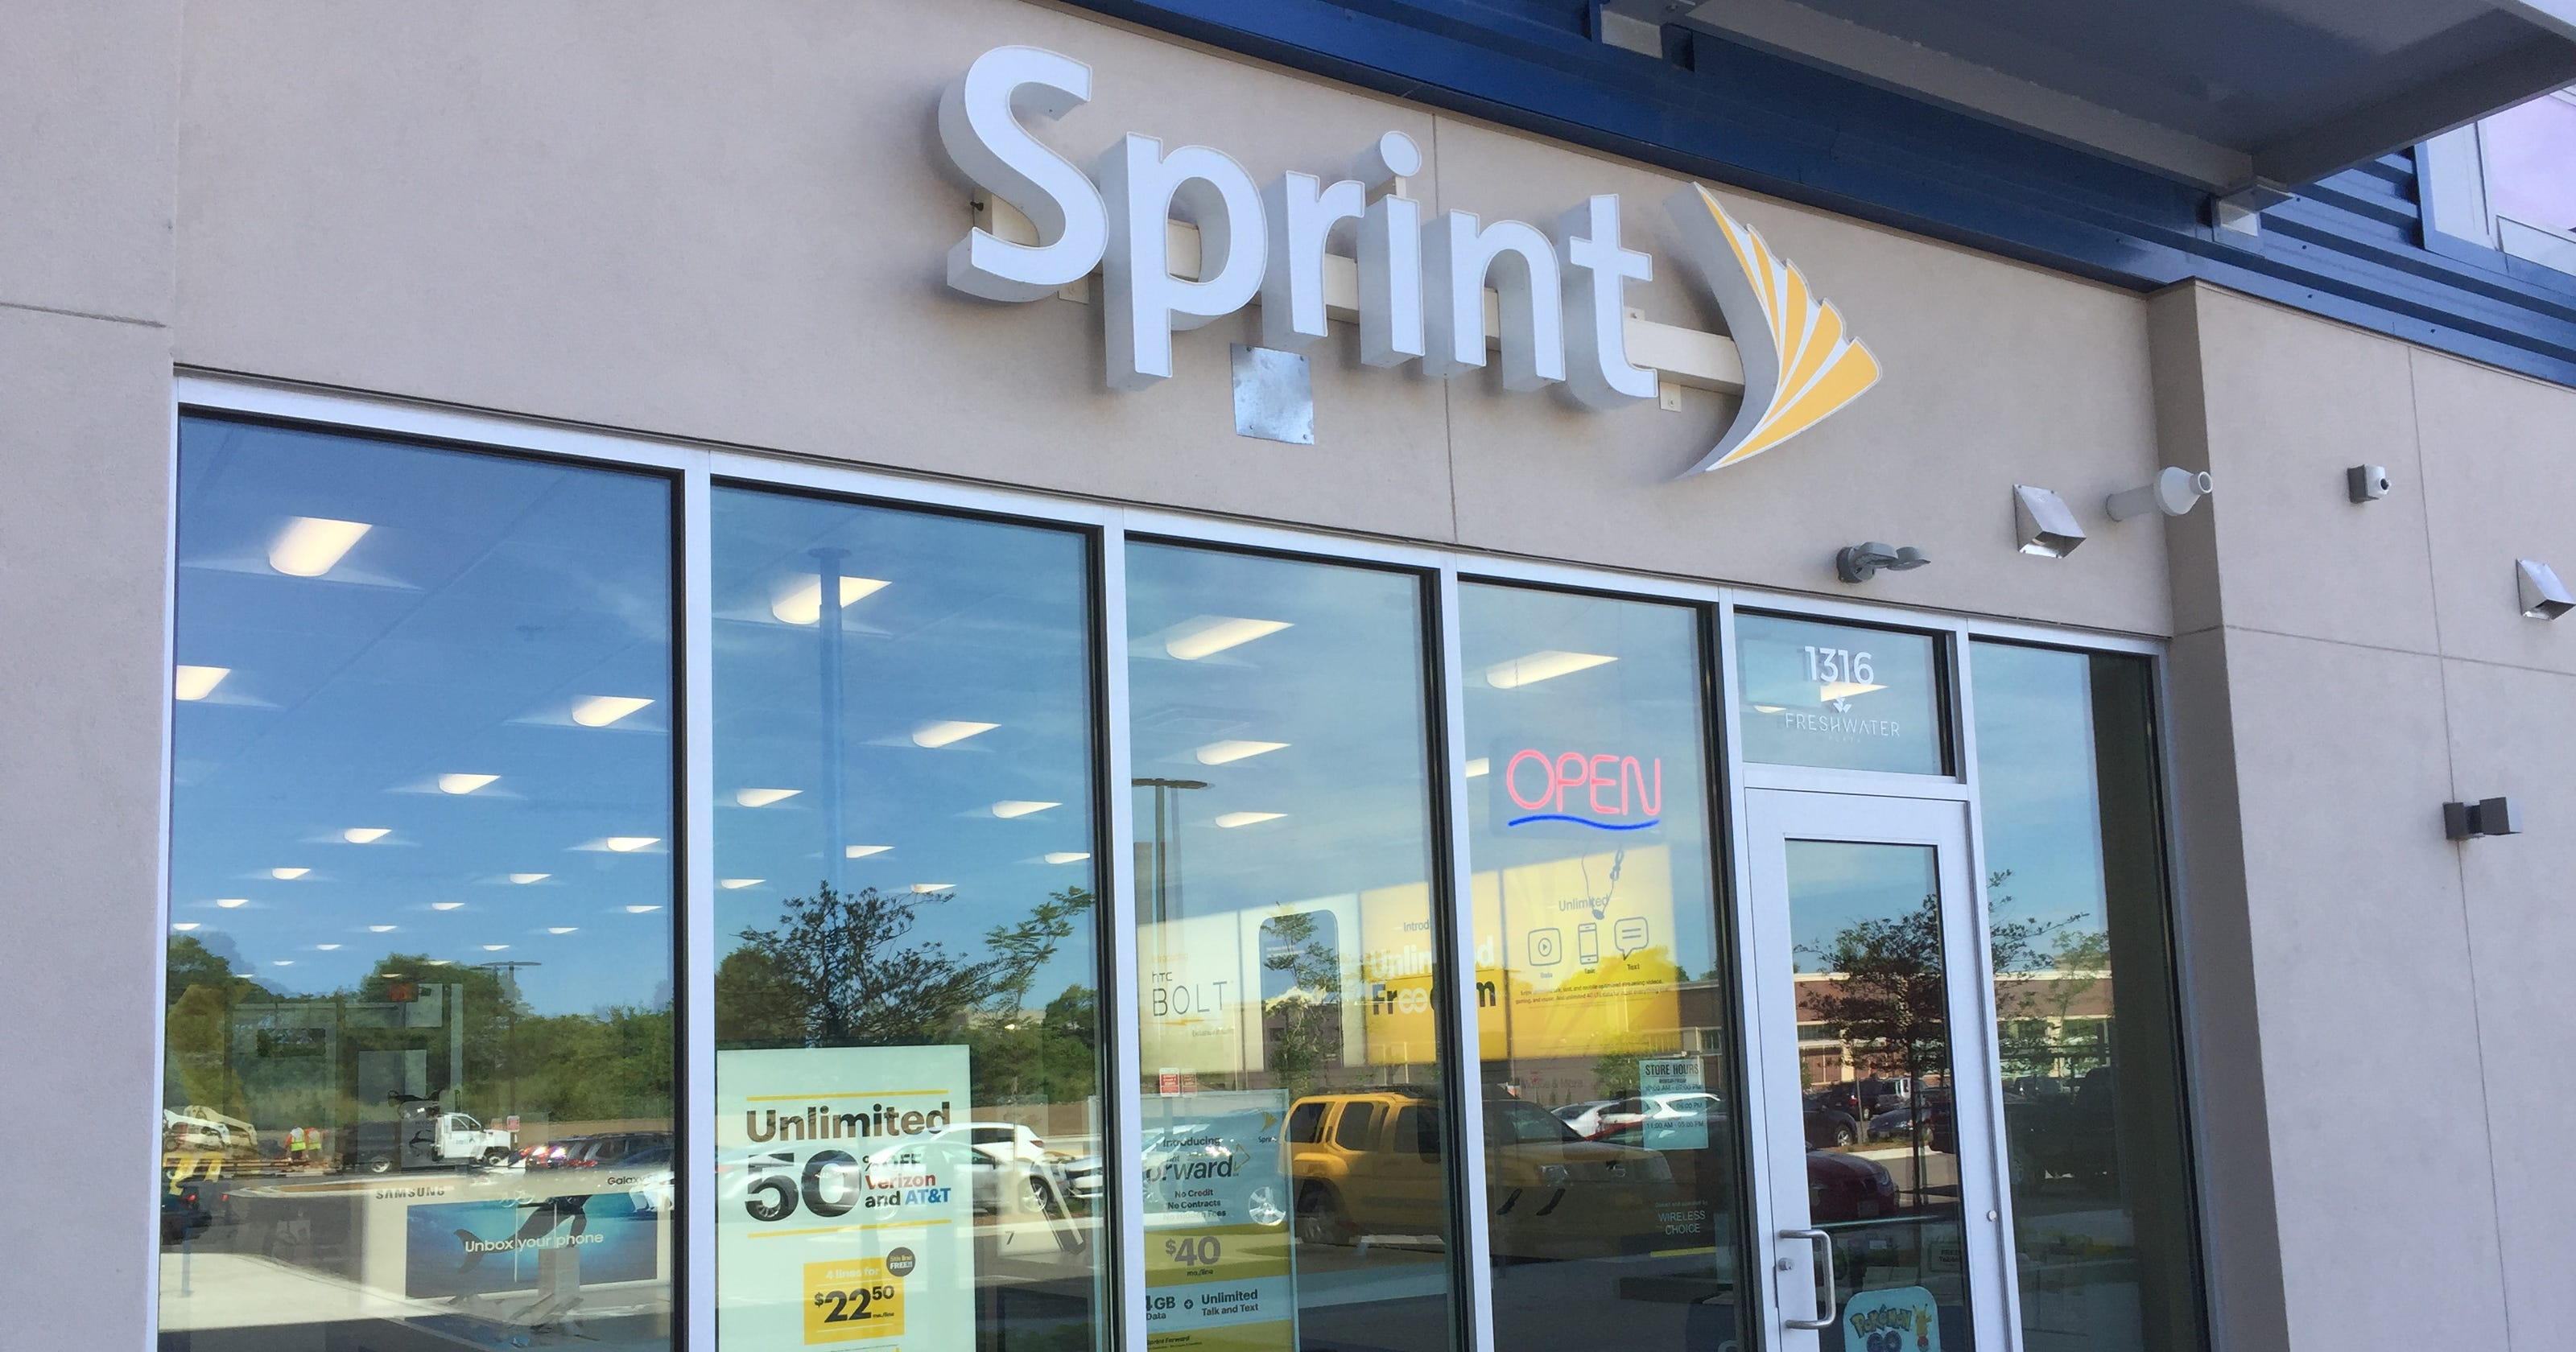 Sprint to give 2,800 Milwaukee Public Schools students free wireless